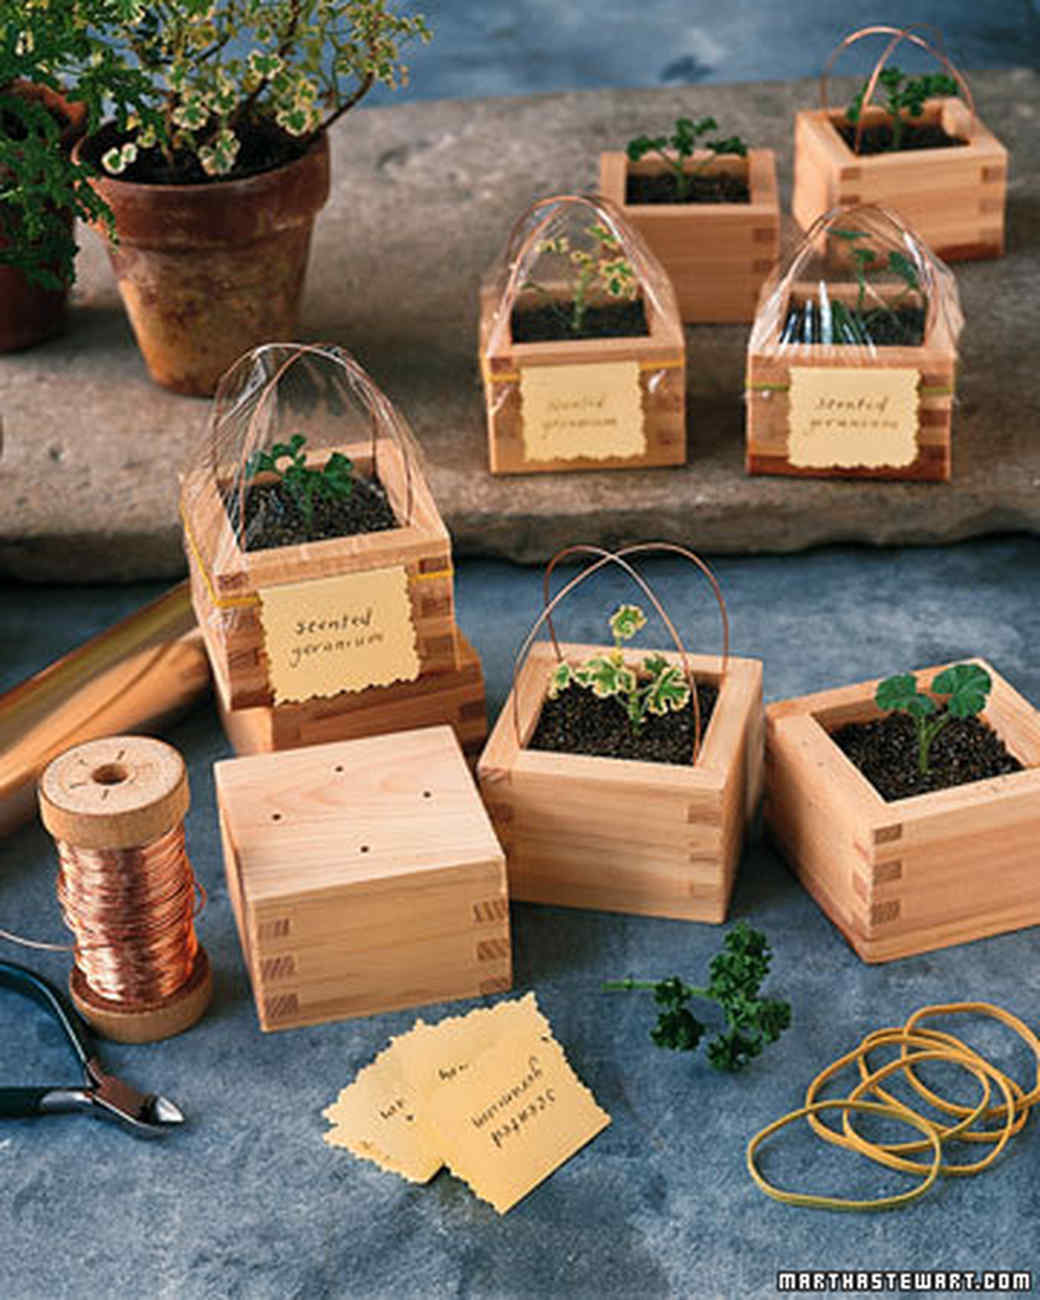 Sake-Box Planters | Martha Stewart on planter wreaths, woven planter baskets, planter bags, planter plants, wall planter baskets, wire baskets,